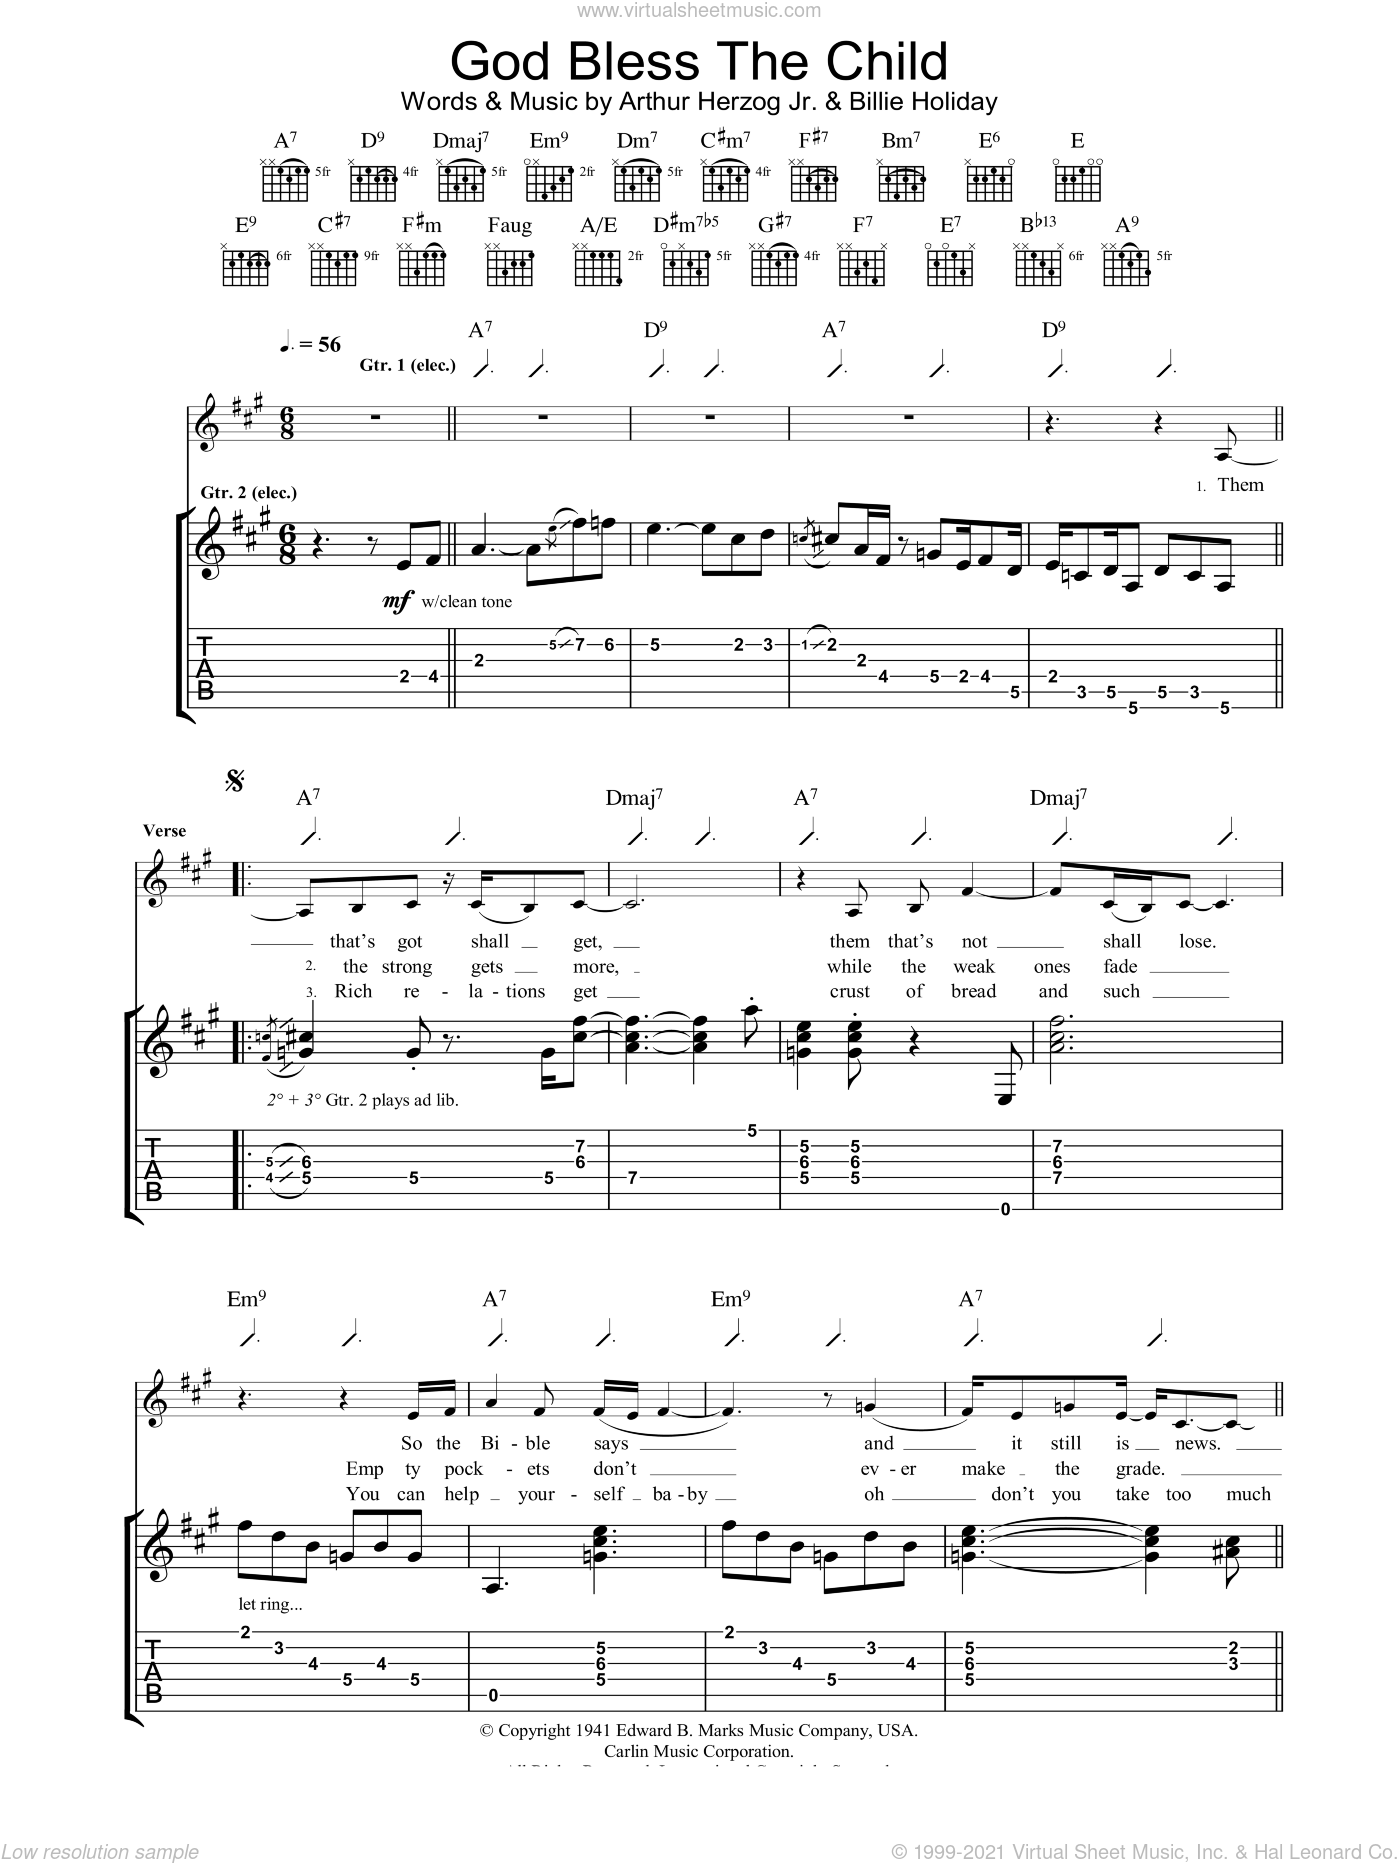 God Bless The Child sheet music for guitar (tablature)